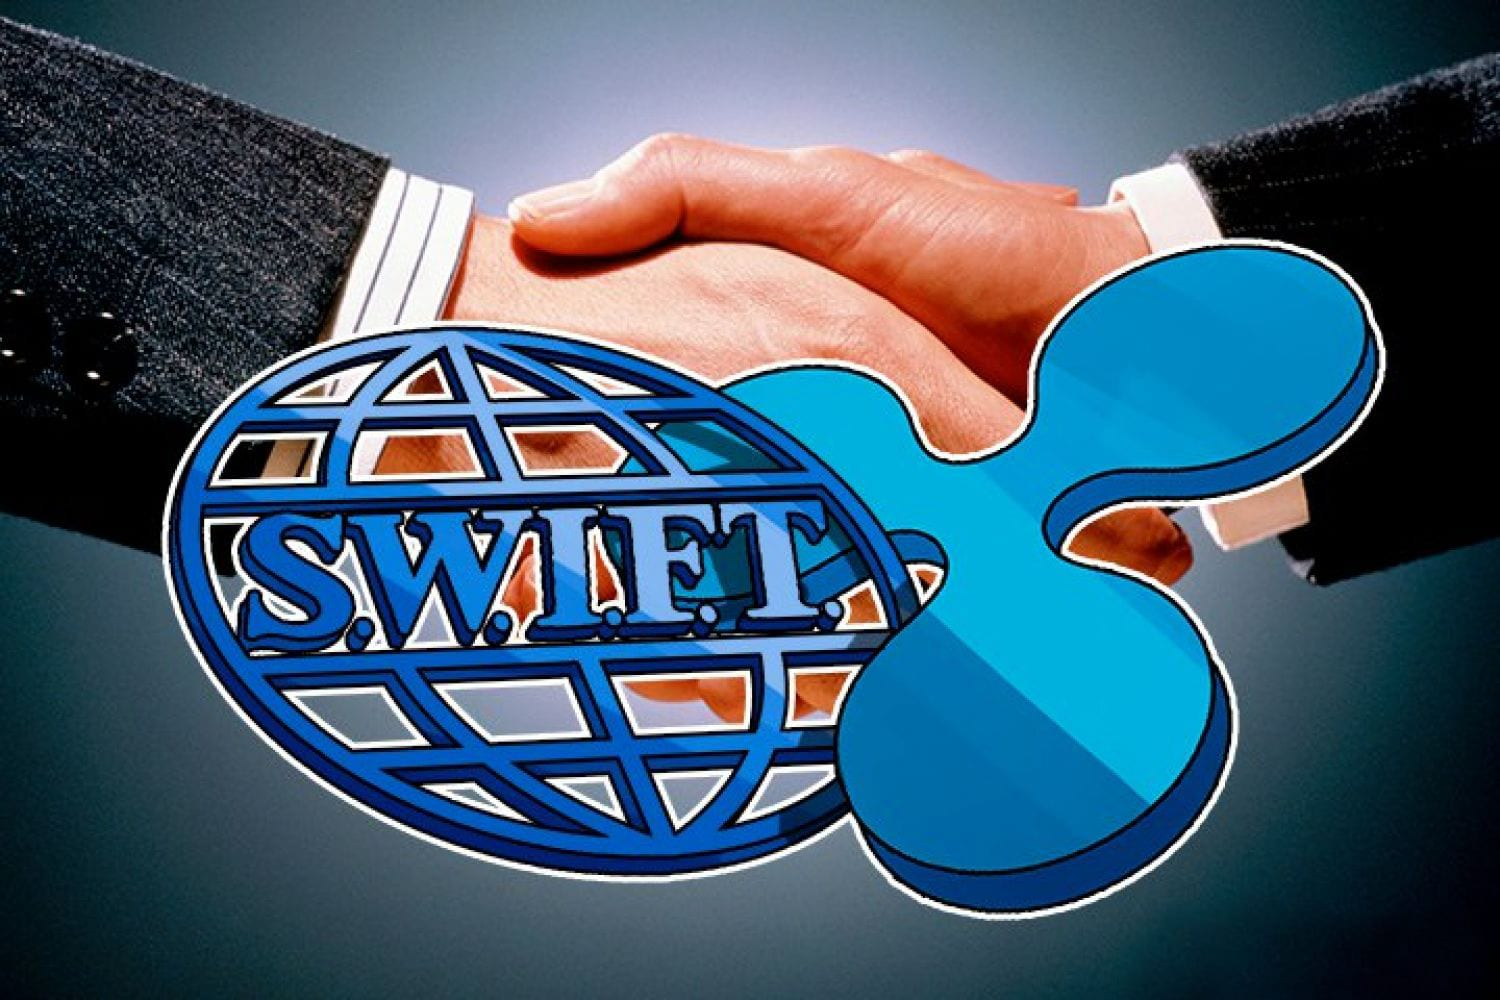 ripple vs swift 2019 - Ripple's CEO Brad Garlinghouse Sparks Speculation About A Potential Partnership With SWIFT